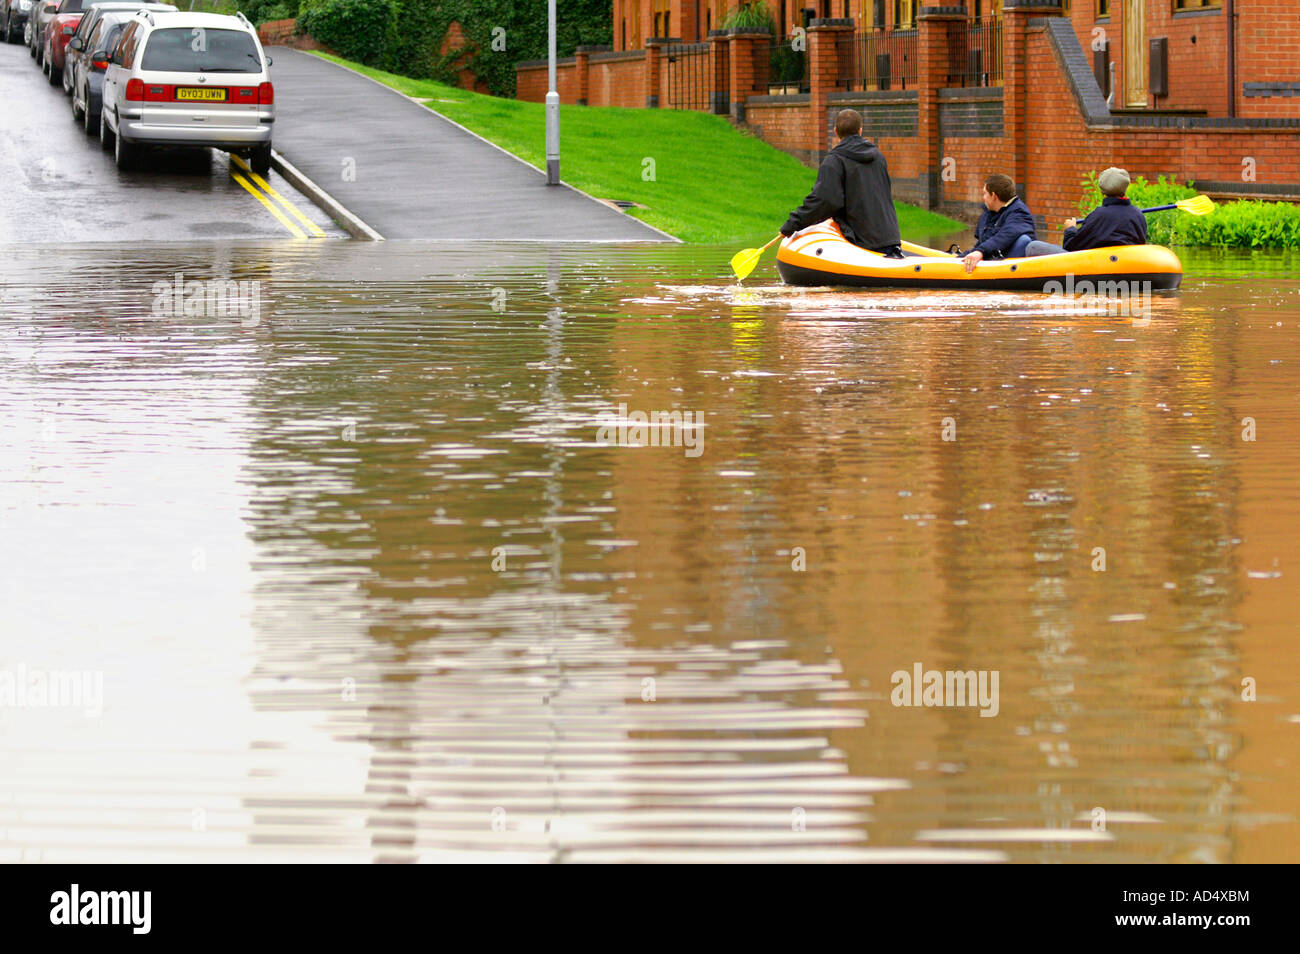 scared children on dinghy are looking for their lost parents during flood of the century. Somerset UK - Stock Image